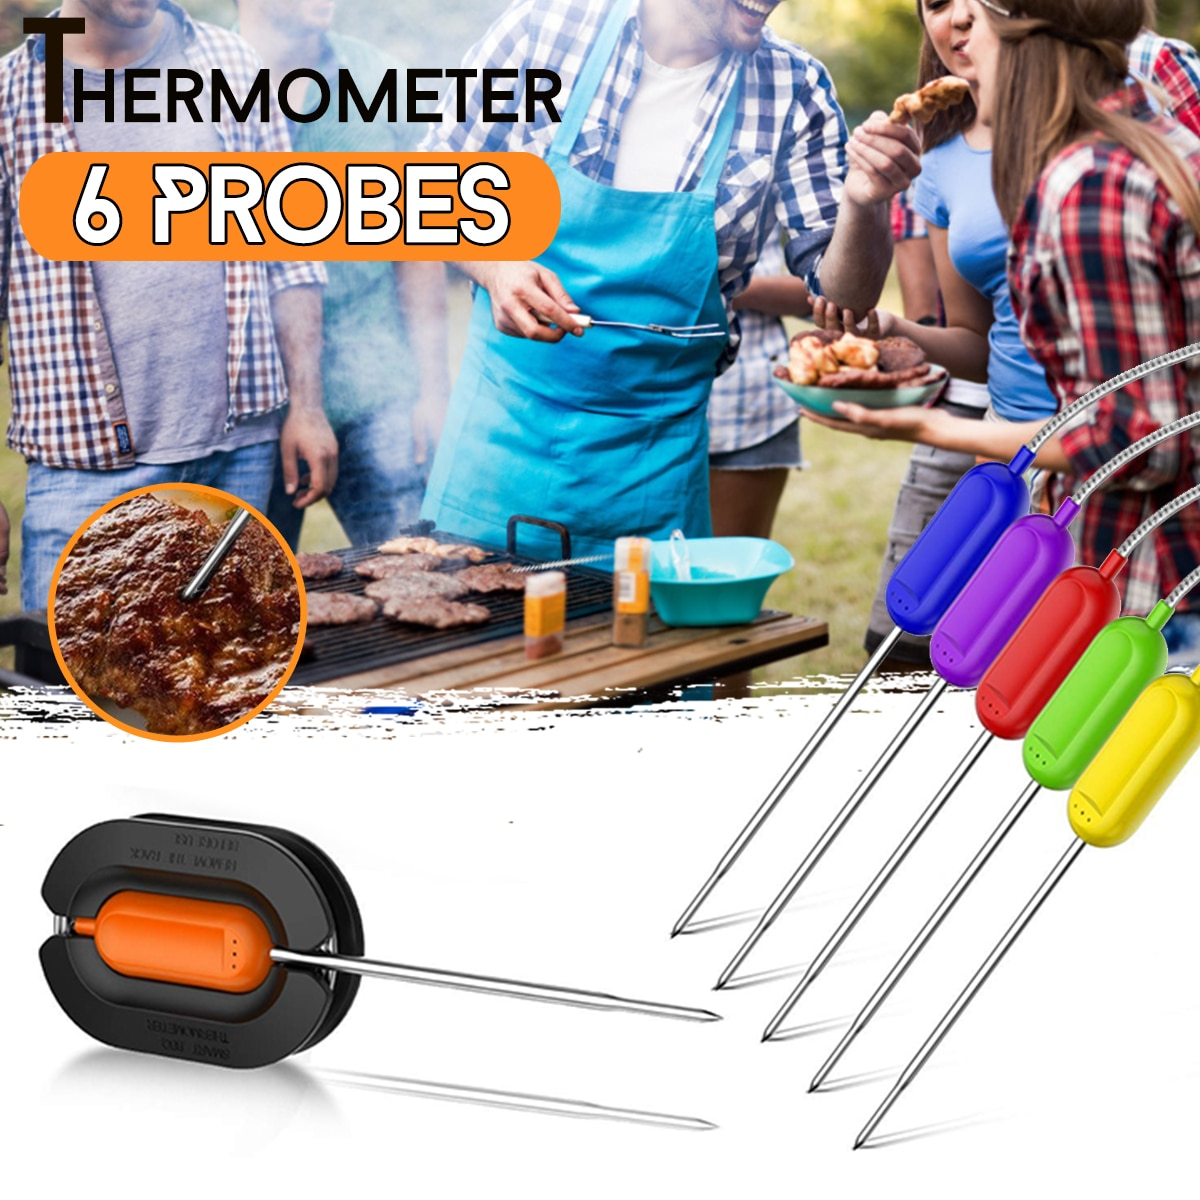 6pcs/set Stainless Steel Probes 15cm Digital Wireless Smart BBQ Grill Barbecue Meat Food Cooking Smoker Thermometer Kitchen Tool